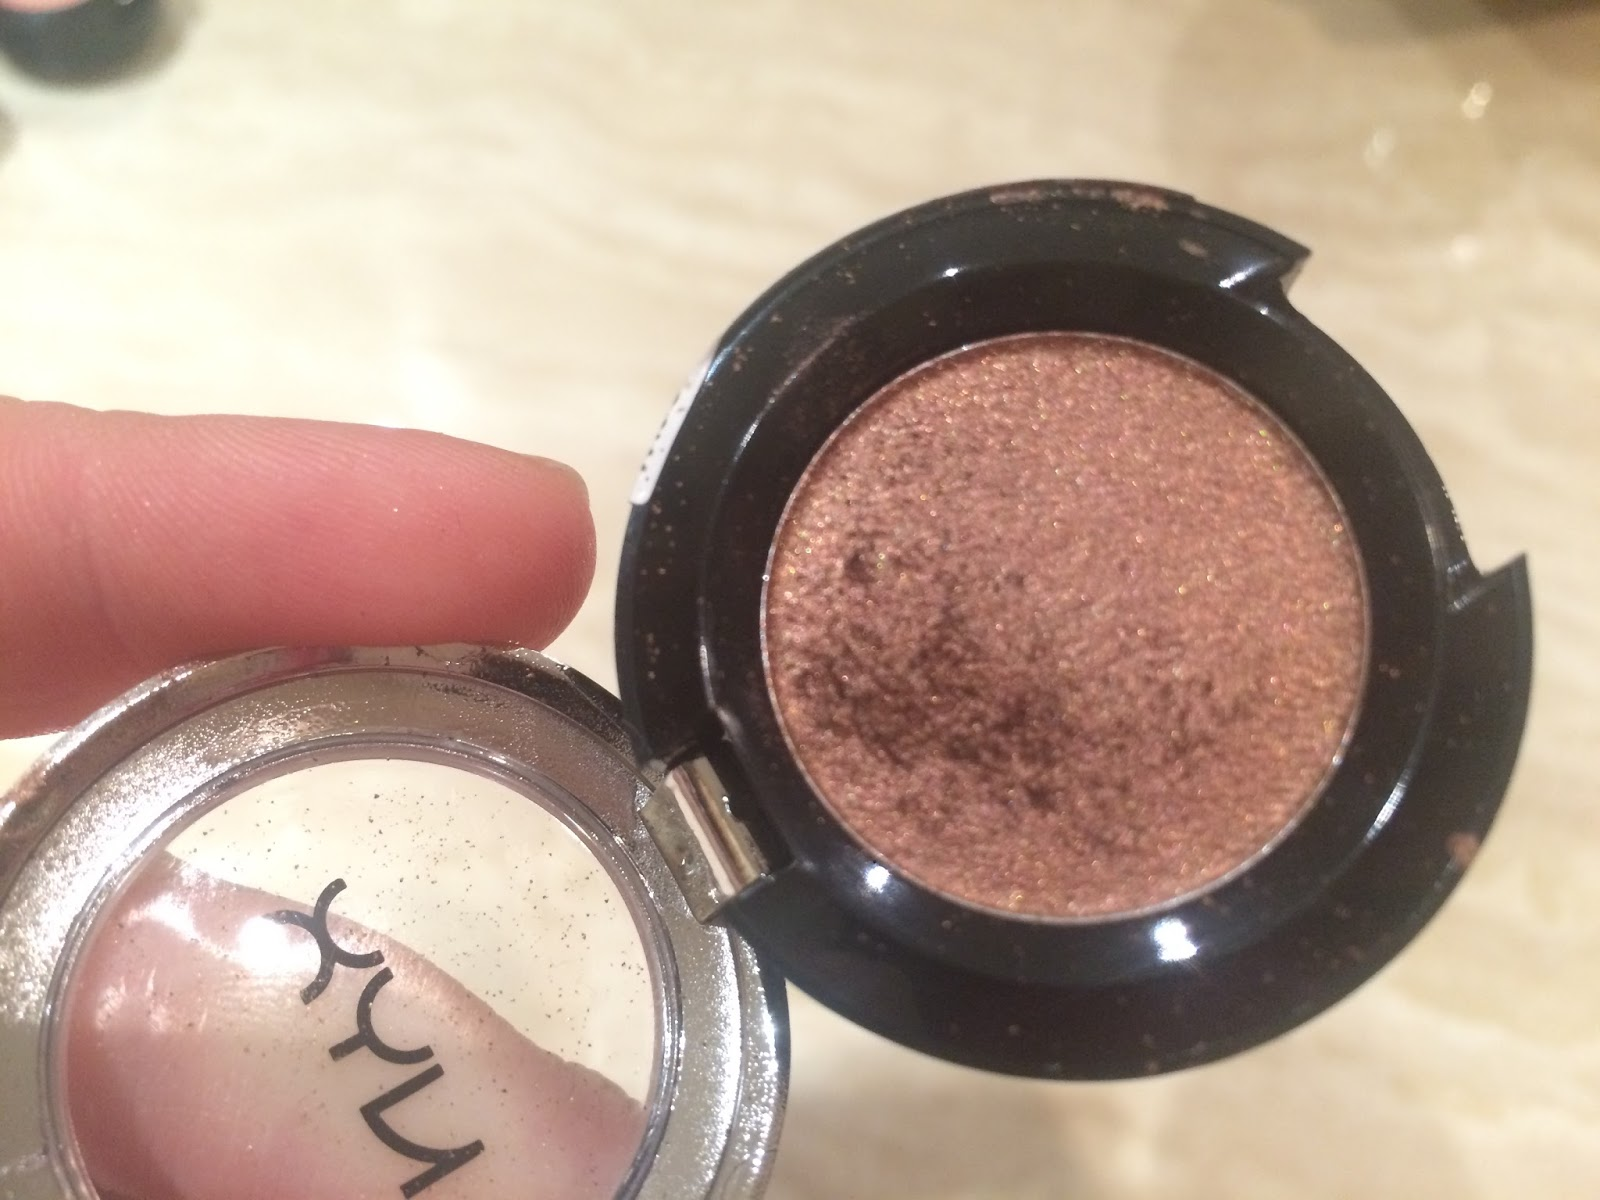 Bedroom Eyes Is A Dark Bronze Brown Shade With Golden Shimmer It S Gorgeous For Quick Wash Of Colour All Over The Lid As Blends Out Really